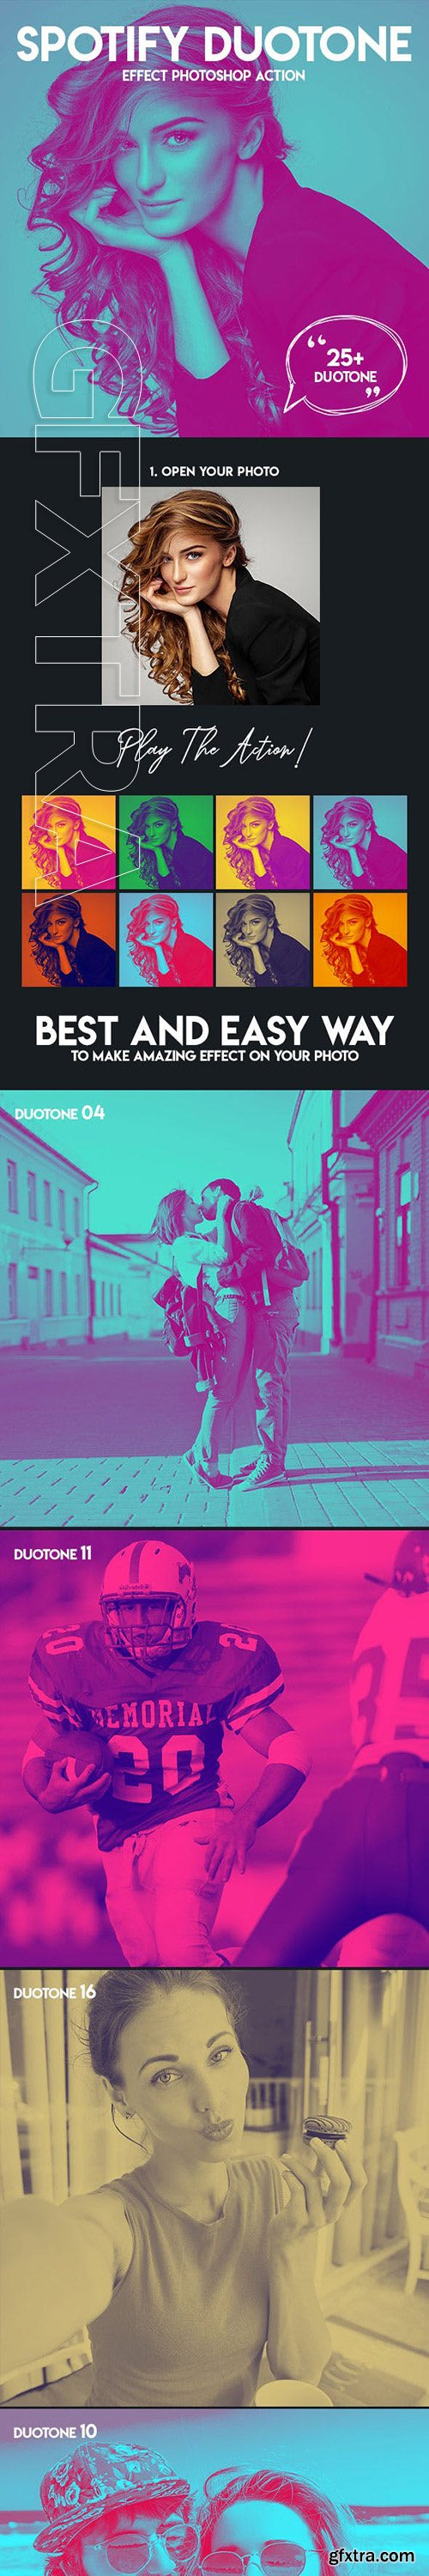 GraphicRiver - Spotify Duotone Effect Photoshop Action 23016022